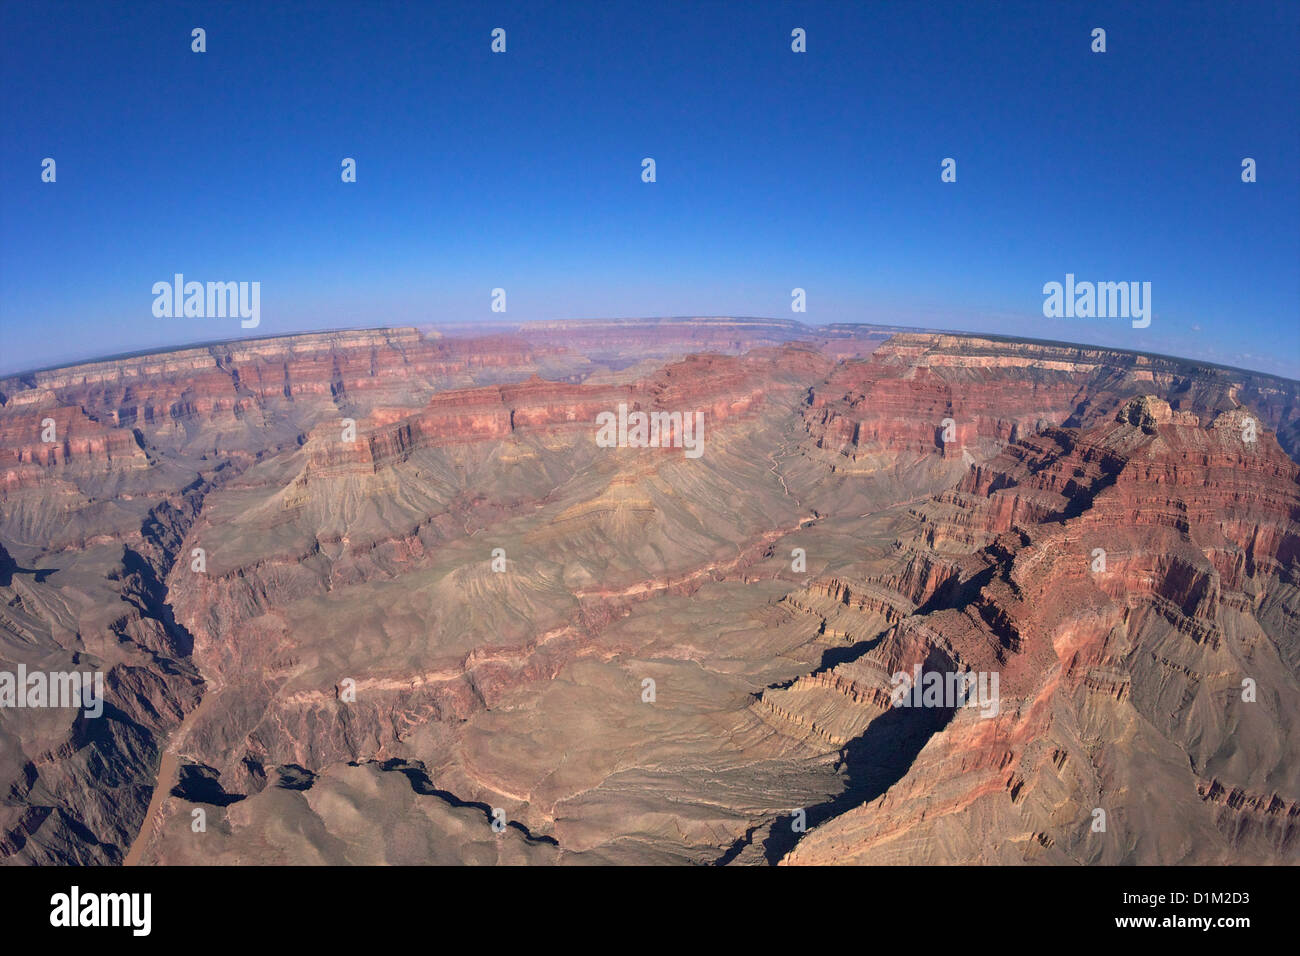 Aerial photo of Grand Canyon from Papillon Helicopter, Grand Canyon National Park, Arizona, USA - Stock Image